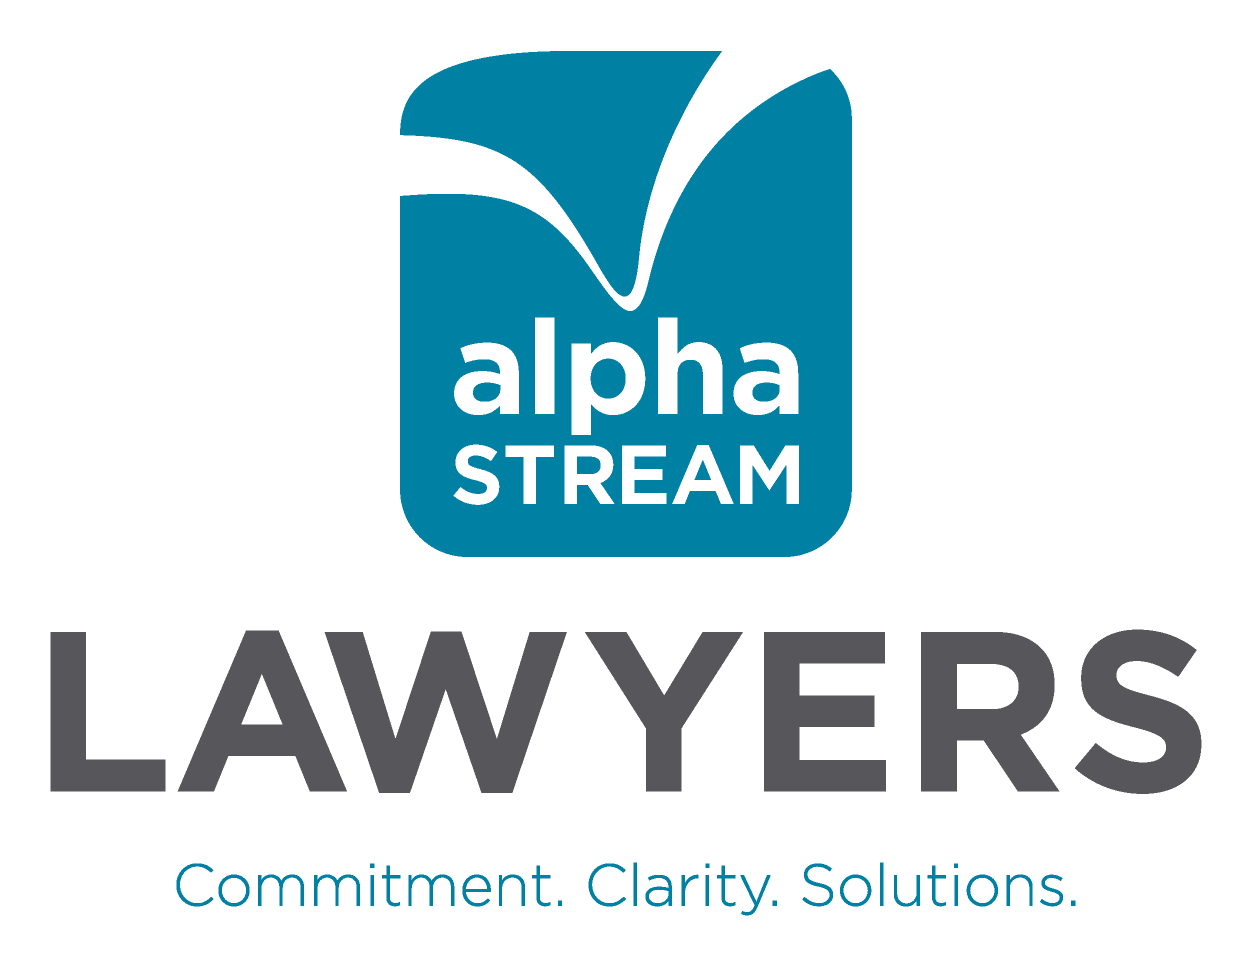 AlphastreamLawyers_vert_colour_tagline